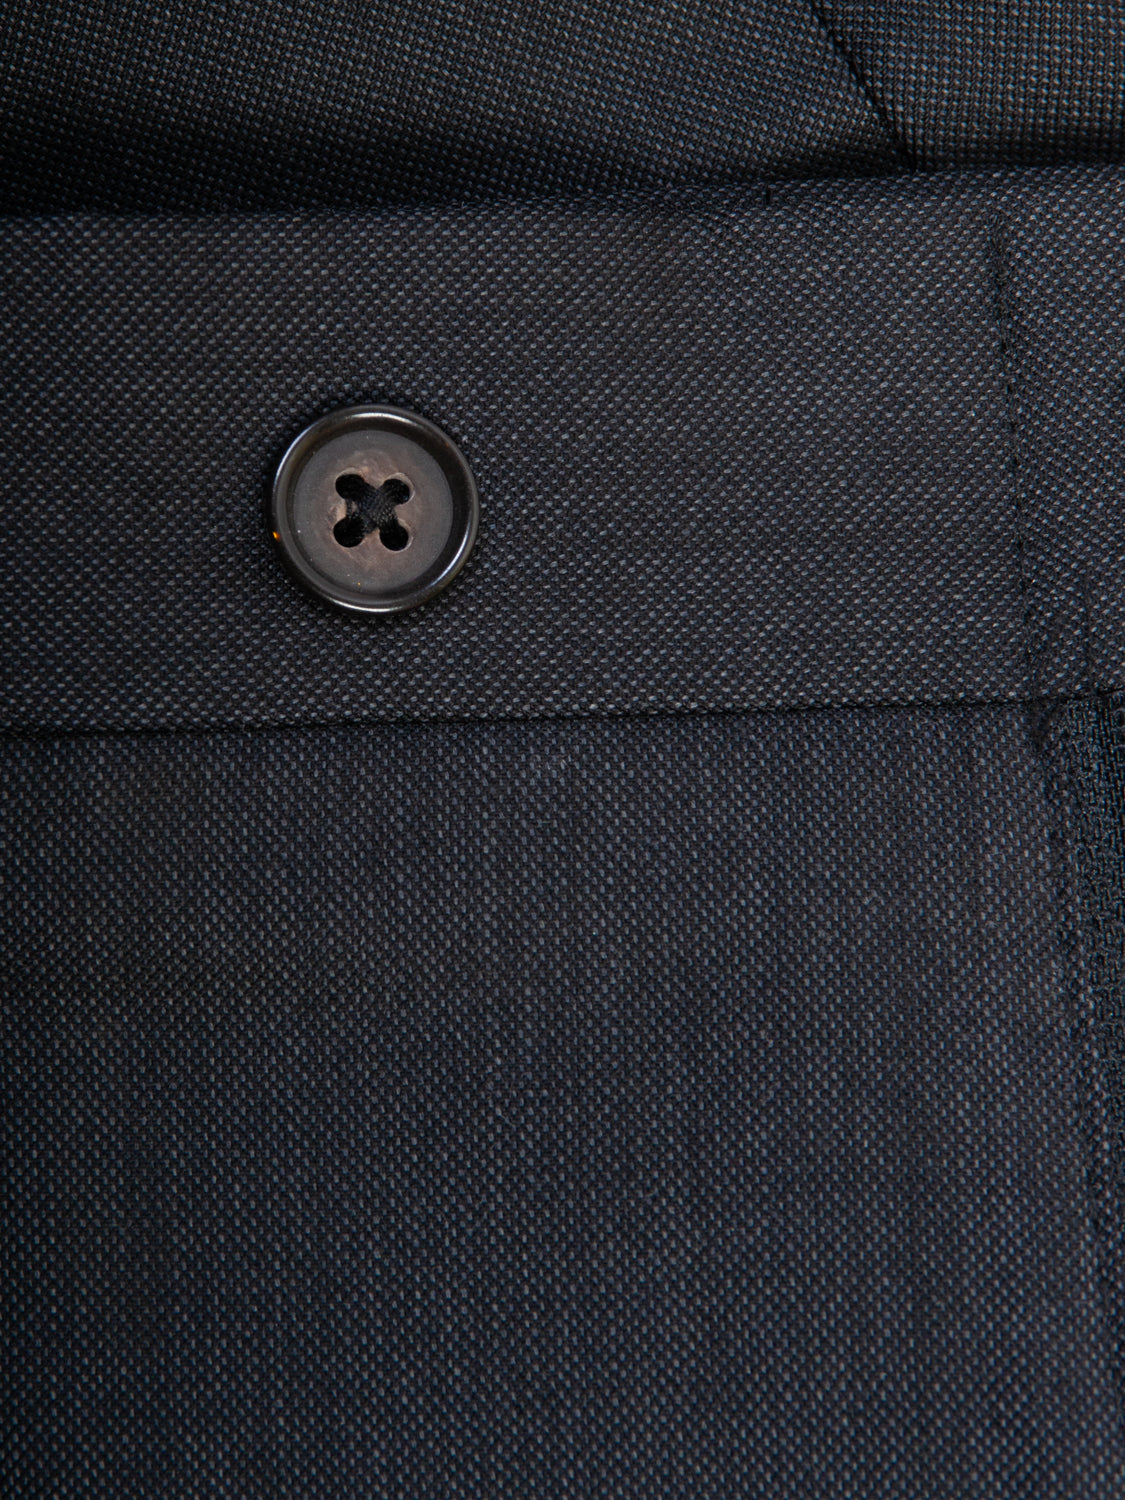 Ted Baker Charcoal Grey Wool Joe Pant for Luxmrkt.com Menswear Consignment Edmonton